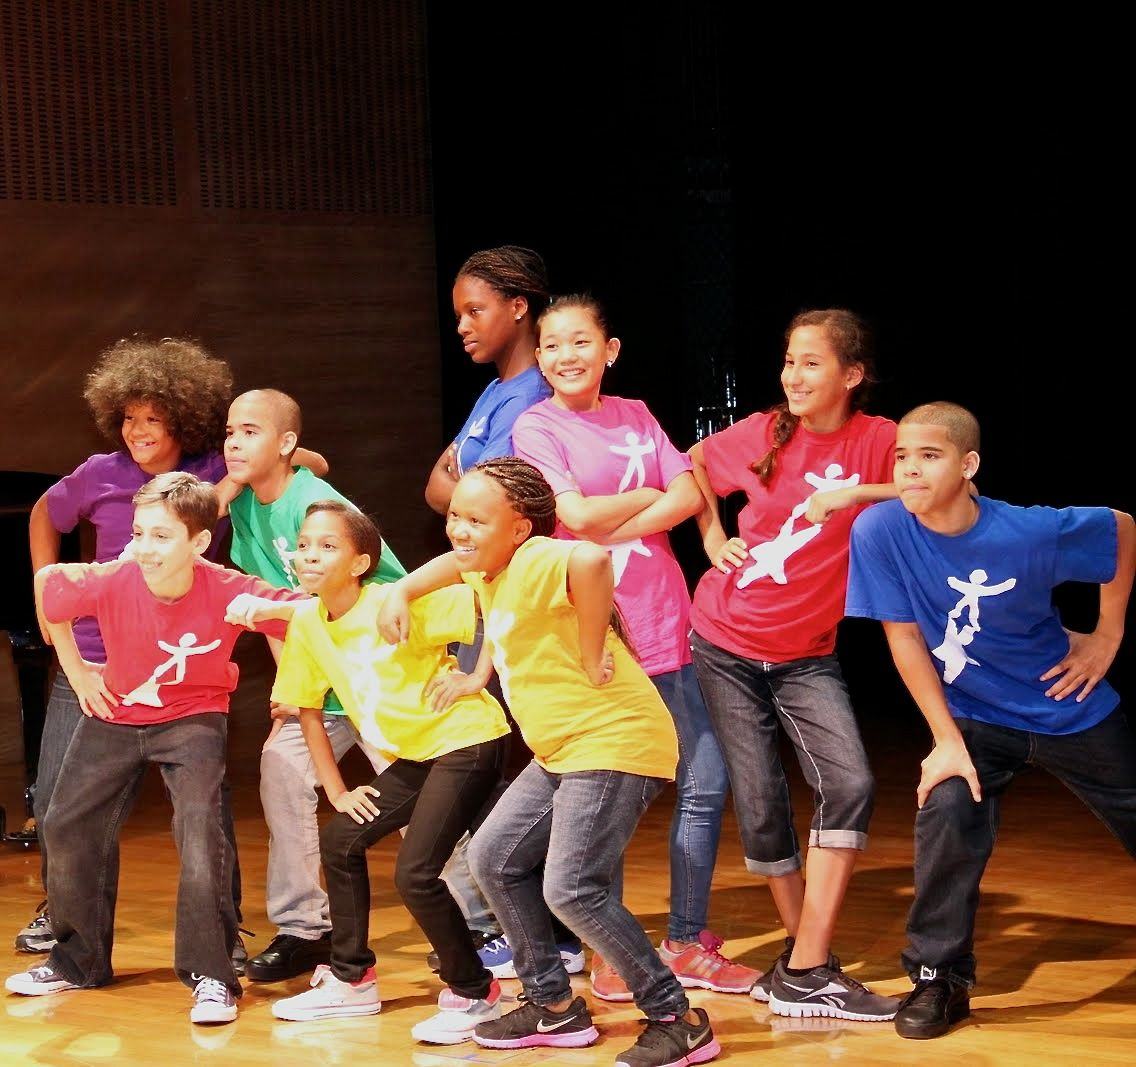 Kids from NDI perform at the Biber Lecture